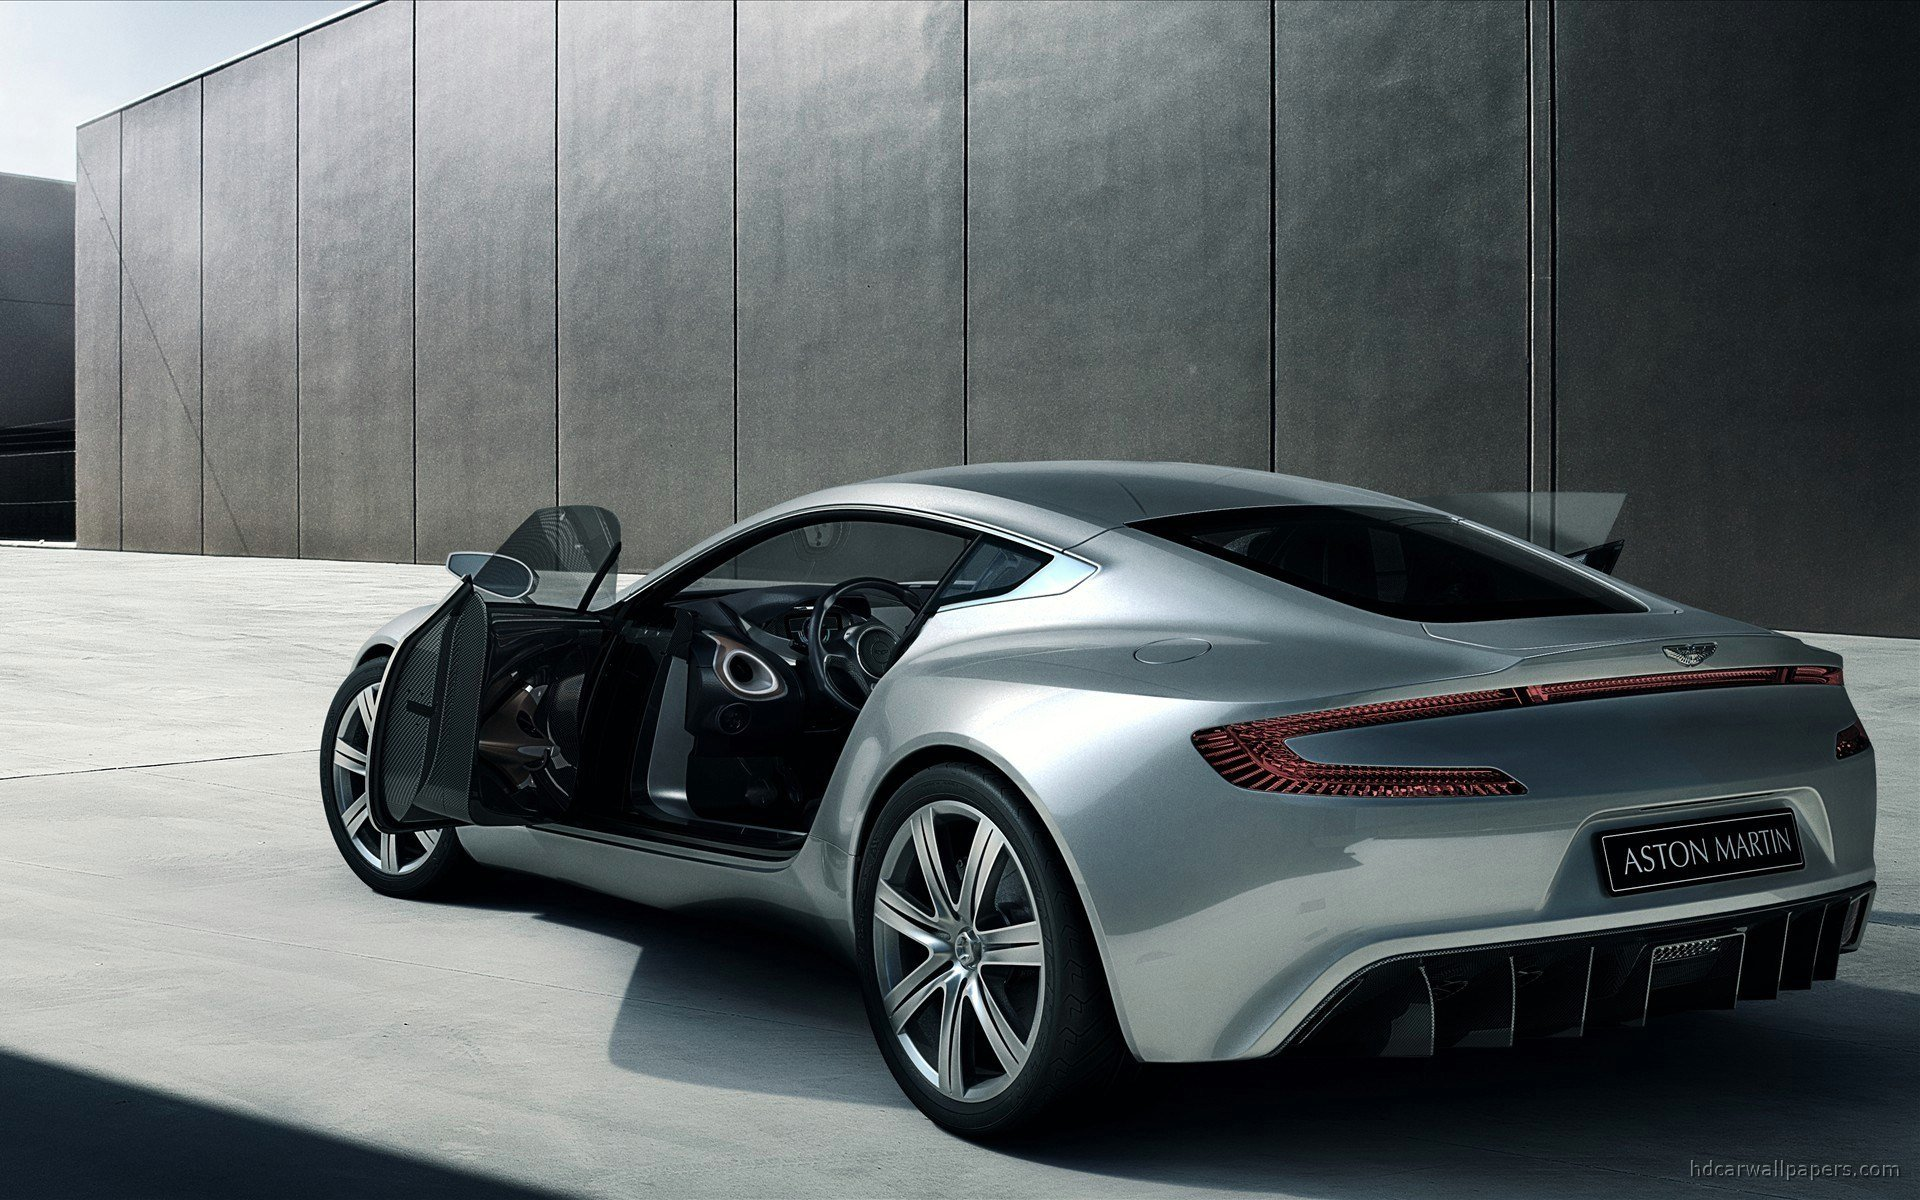 Latest 2010 Aston Martin One 77 Wallpaper Hd Car Wallpapers Free Download